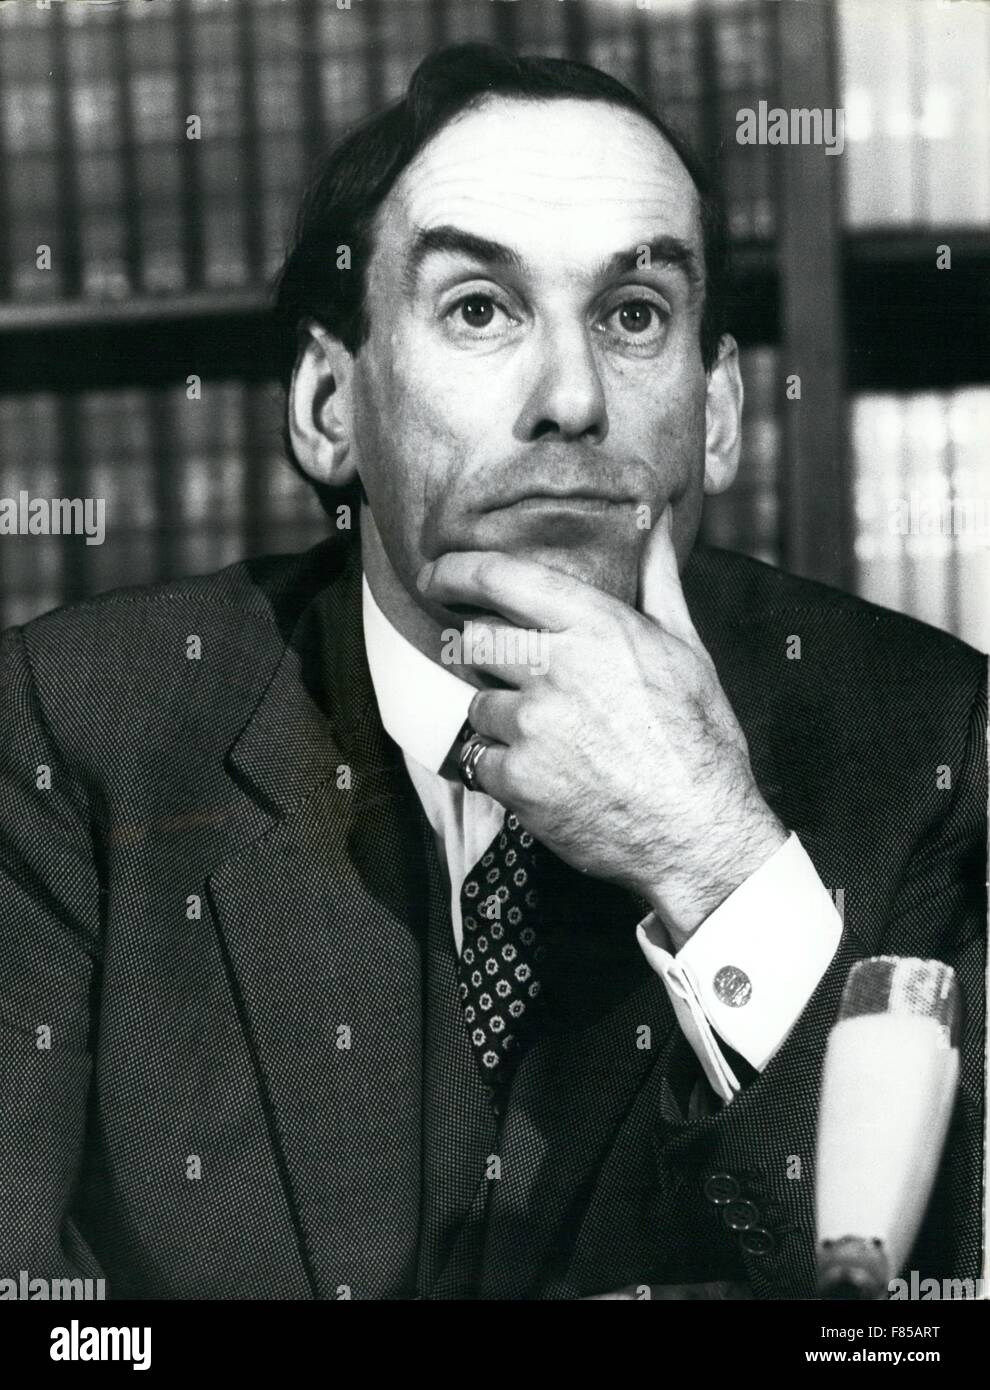 1968 - A study of Mr. Jeremy Thorpe © Keystone Pictures USA/ZUMAPRESS.com/Alamy Live NewsStock Photo